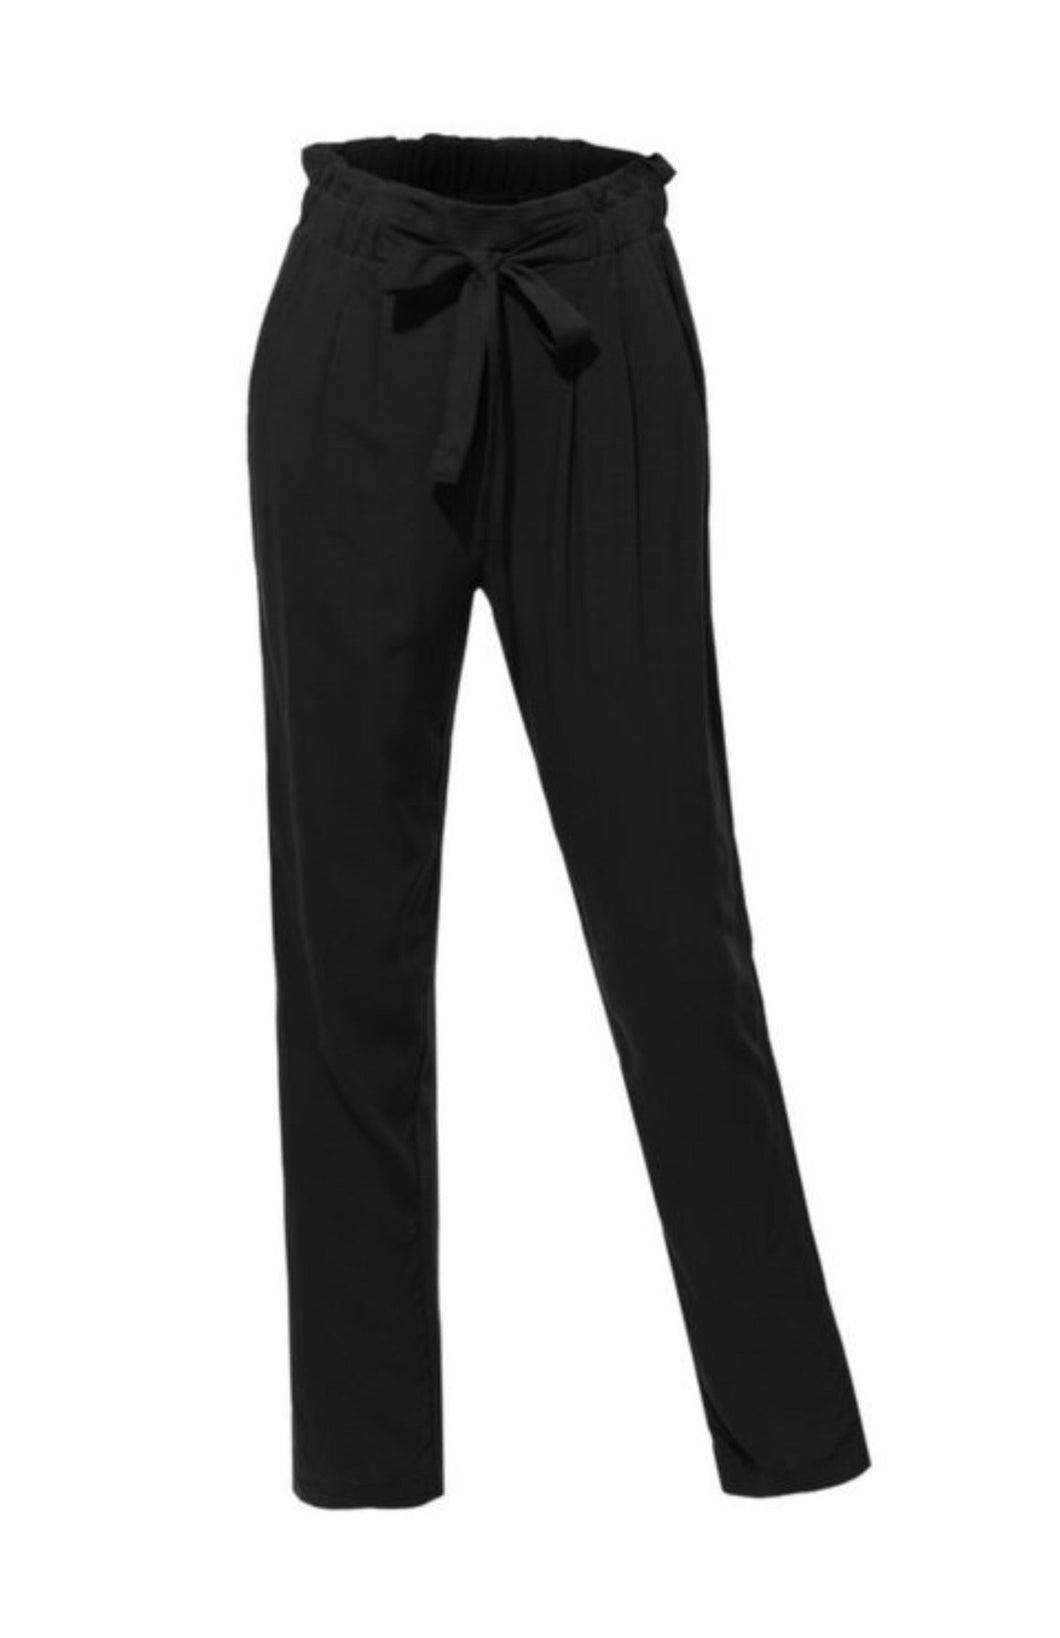 LuLu Pants - Black